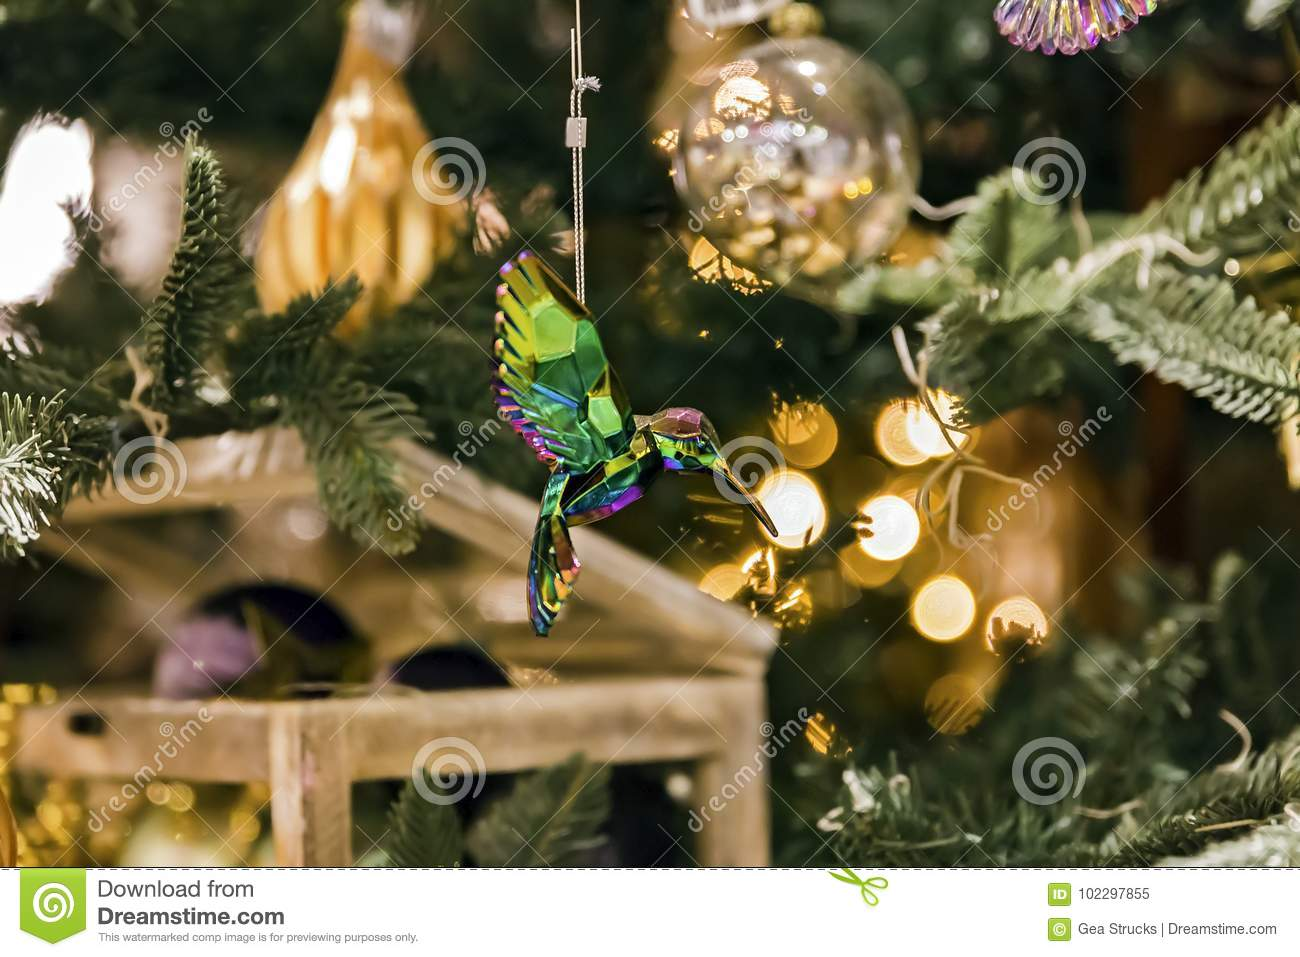 crystal hummingbird christmas ornament in tree